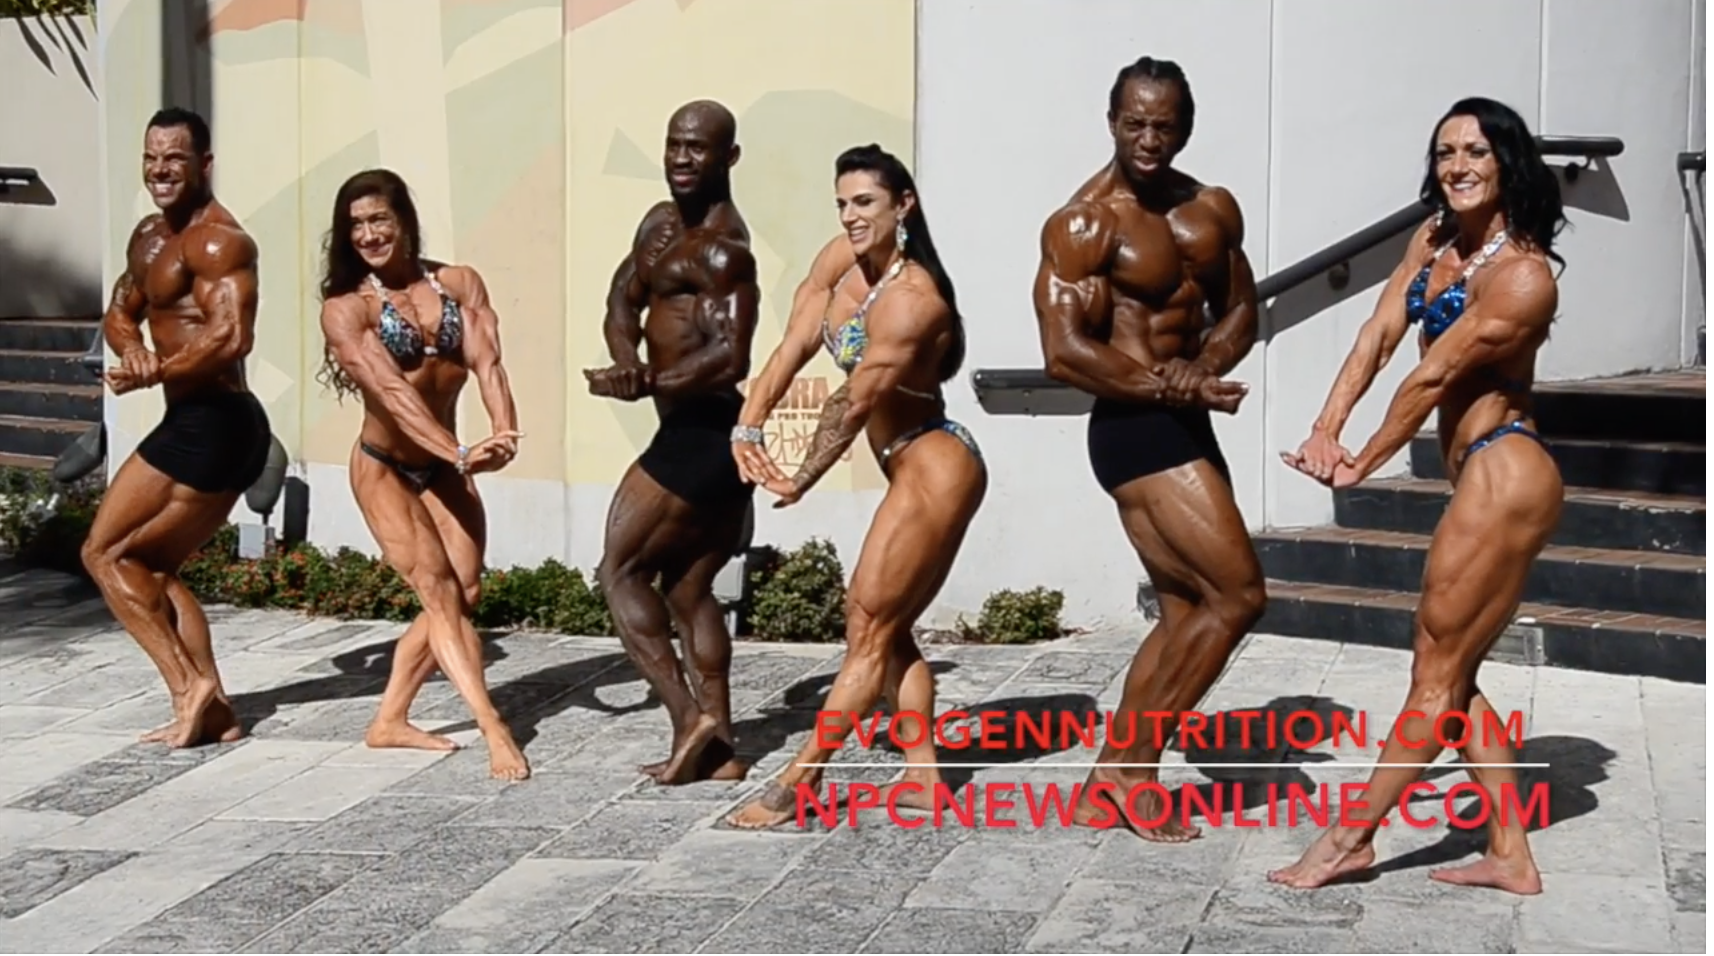 2017 J.M. Manion Sunday Shoot: NPC Nationals Men's Classic & Women's Physique Winners